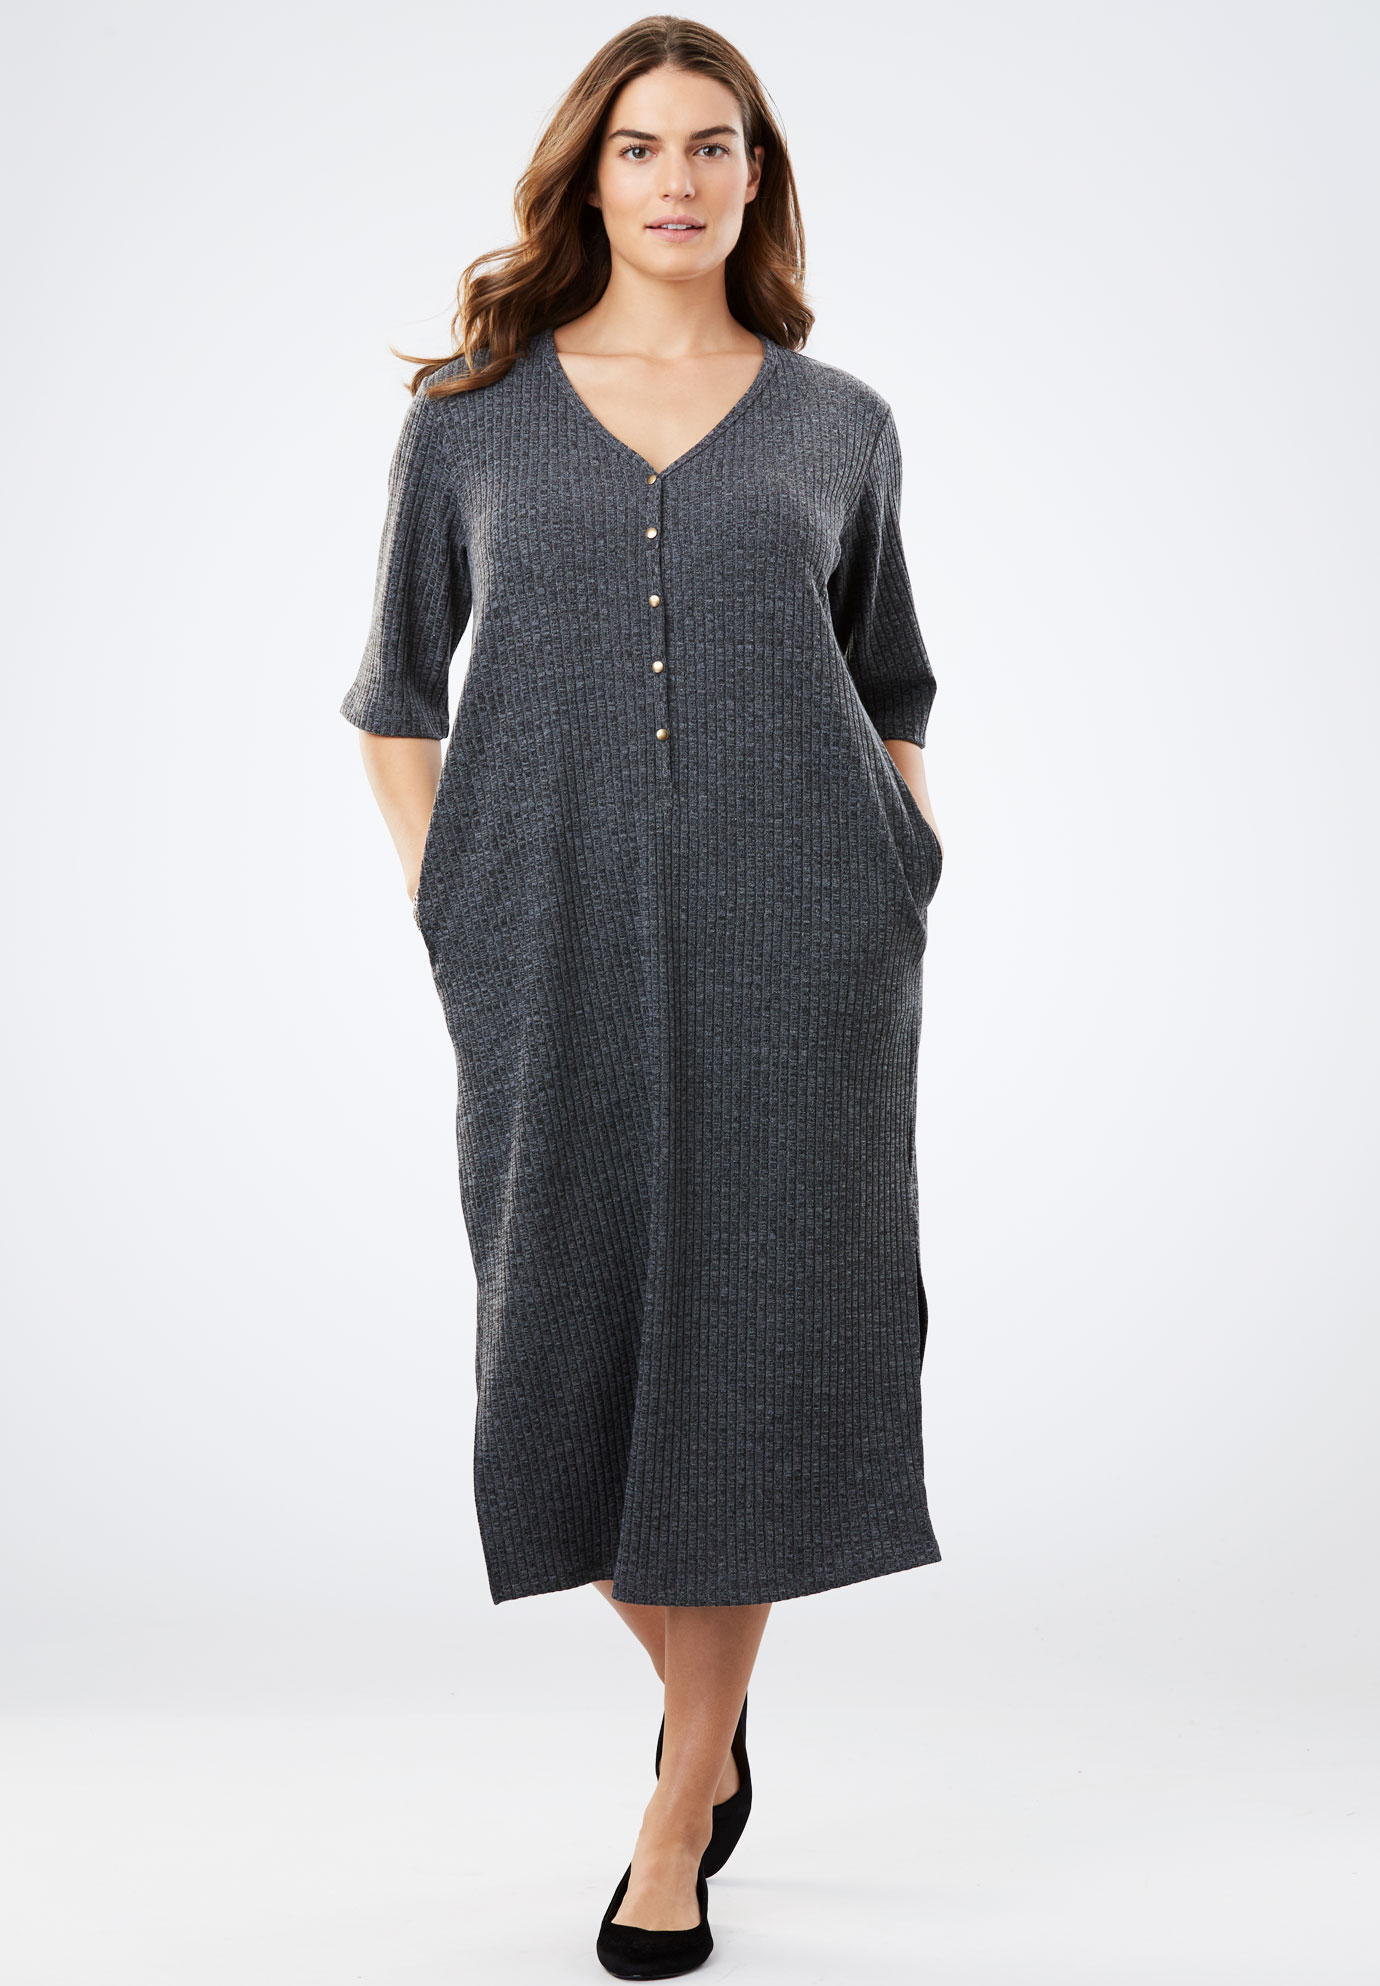 Rib Knit Buttoned T Shirt Dress Plus Size Tops Woman Within